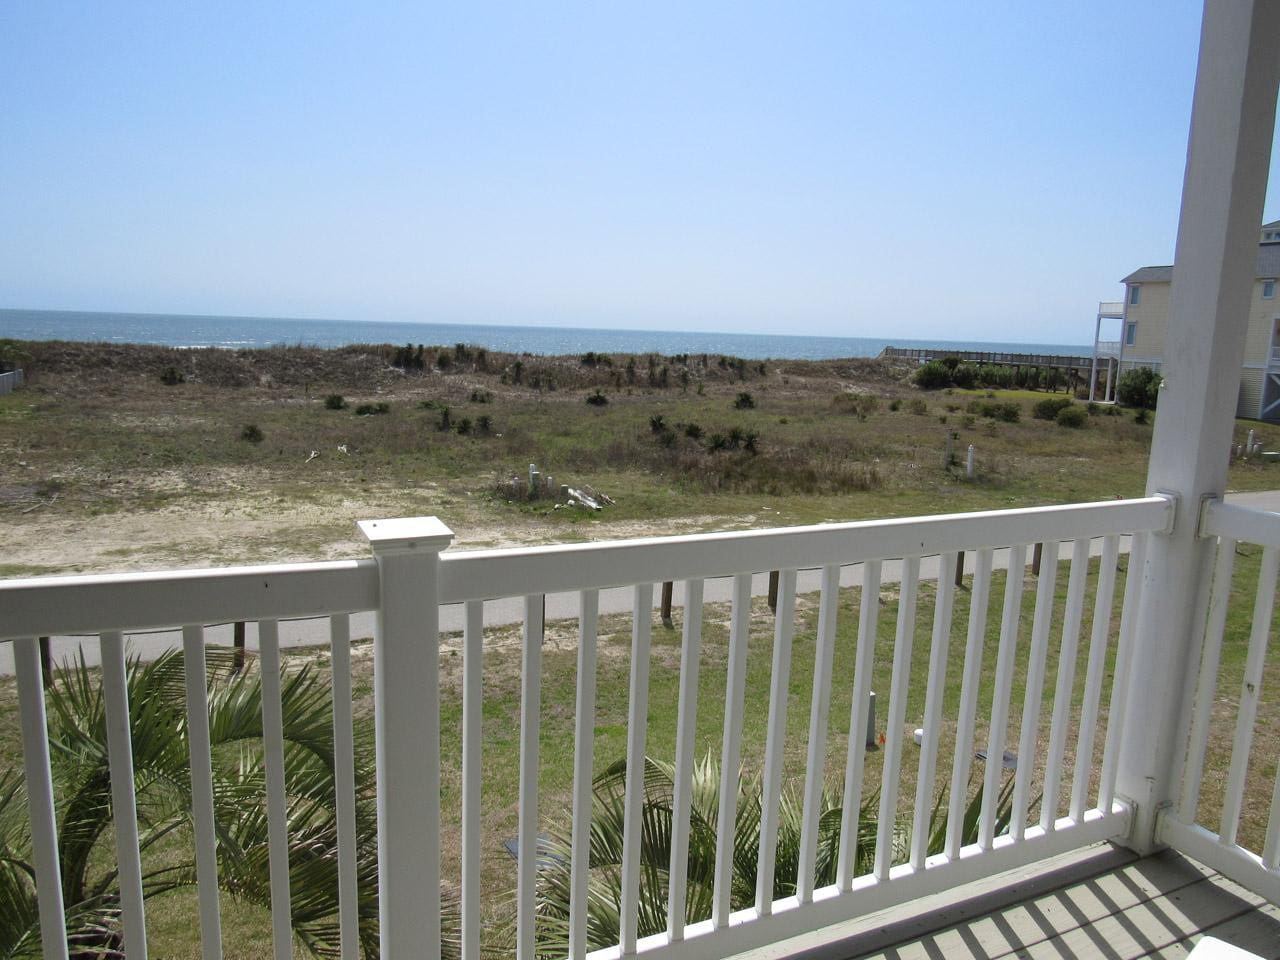 200 FT to beach directly across from beach access walkway